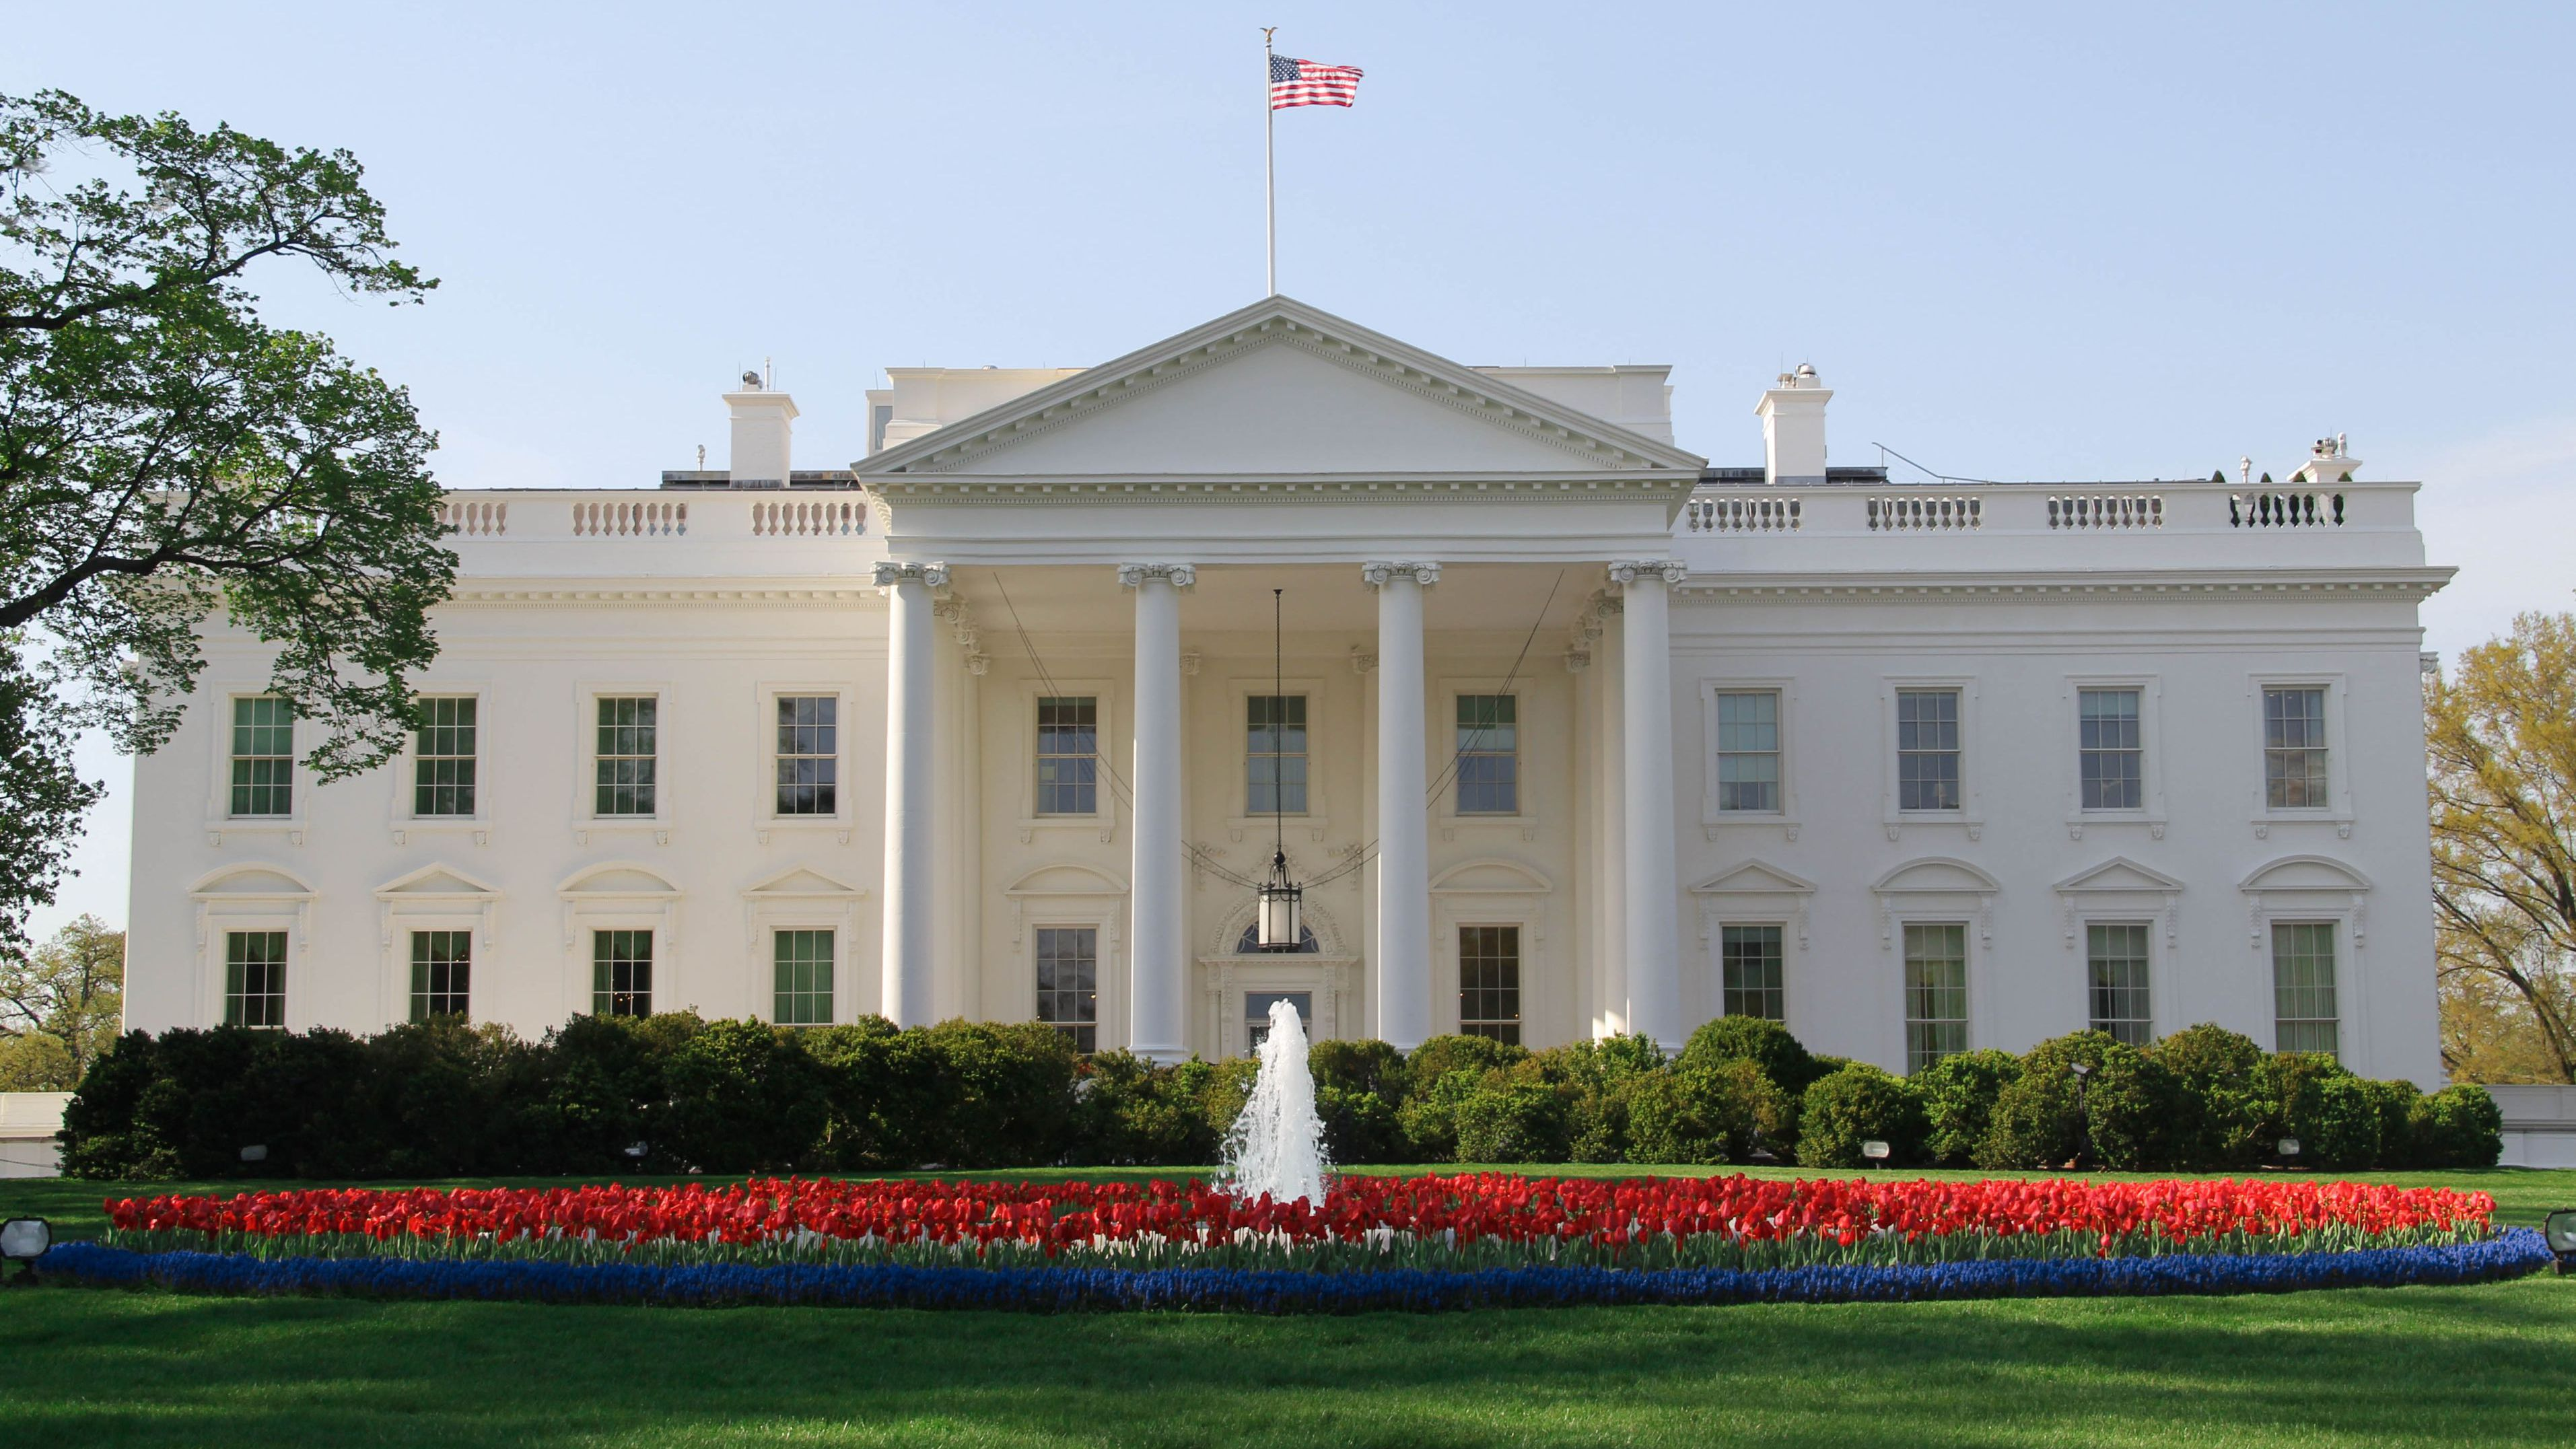 Visitor's Guide to The White House